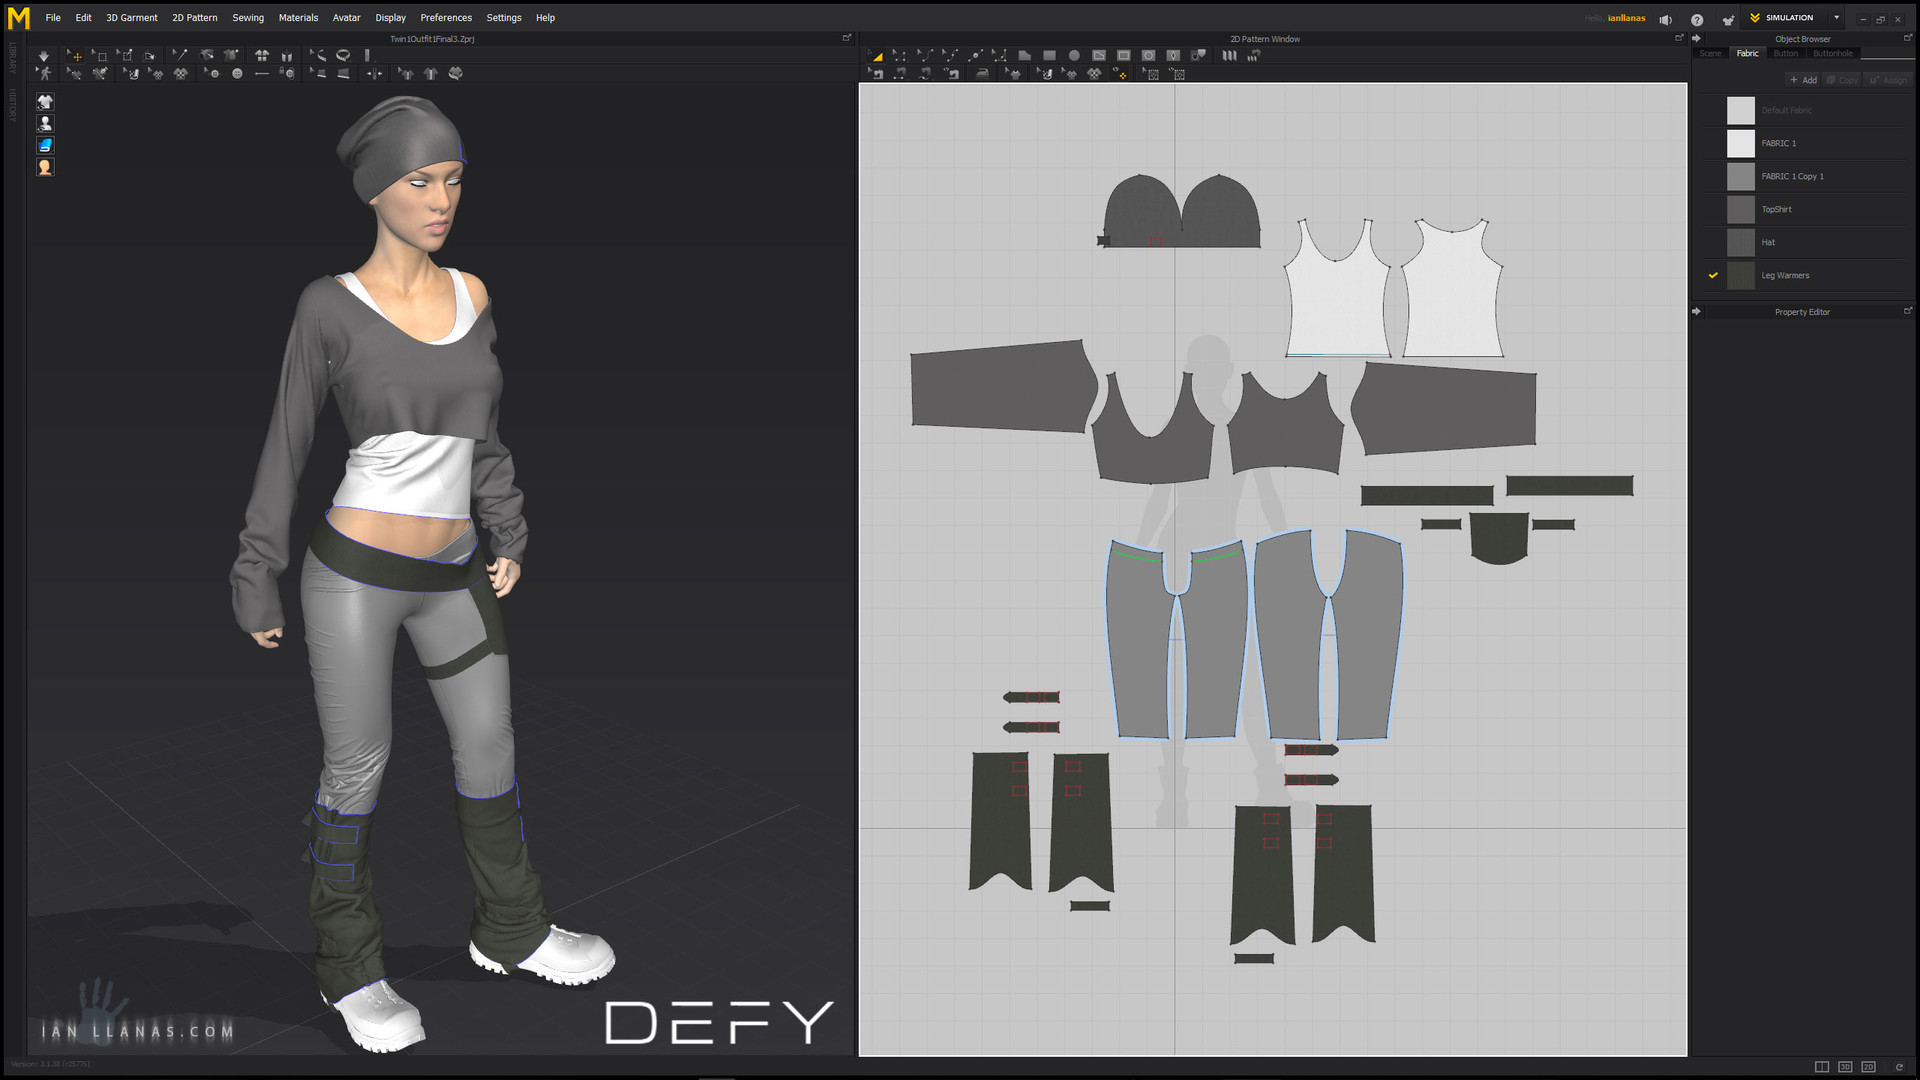 The Marvelous Designer Layout. I started creating the belt and decided at that point that i was getting diminishing returns and decided to switch to 2d techniques to finish off the concept.